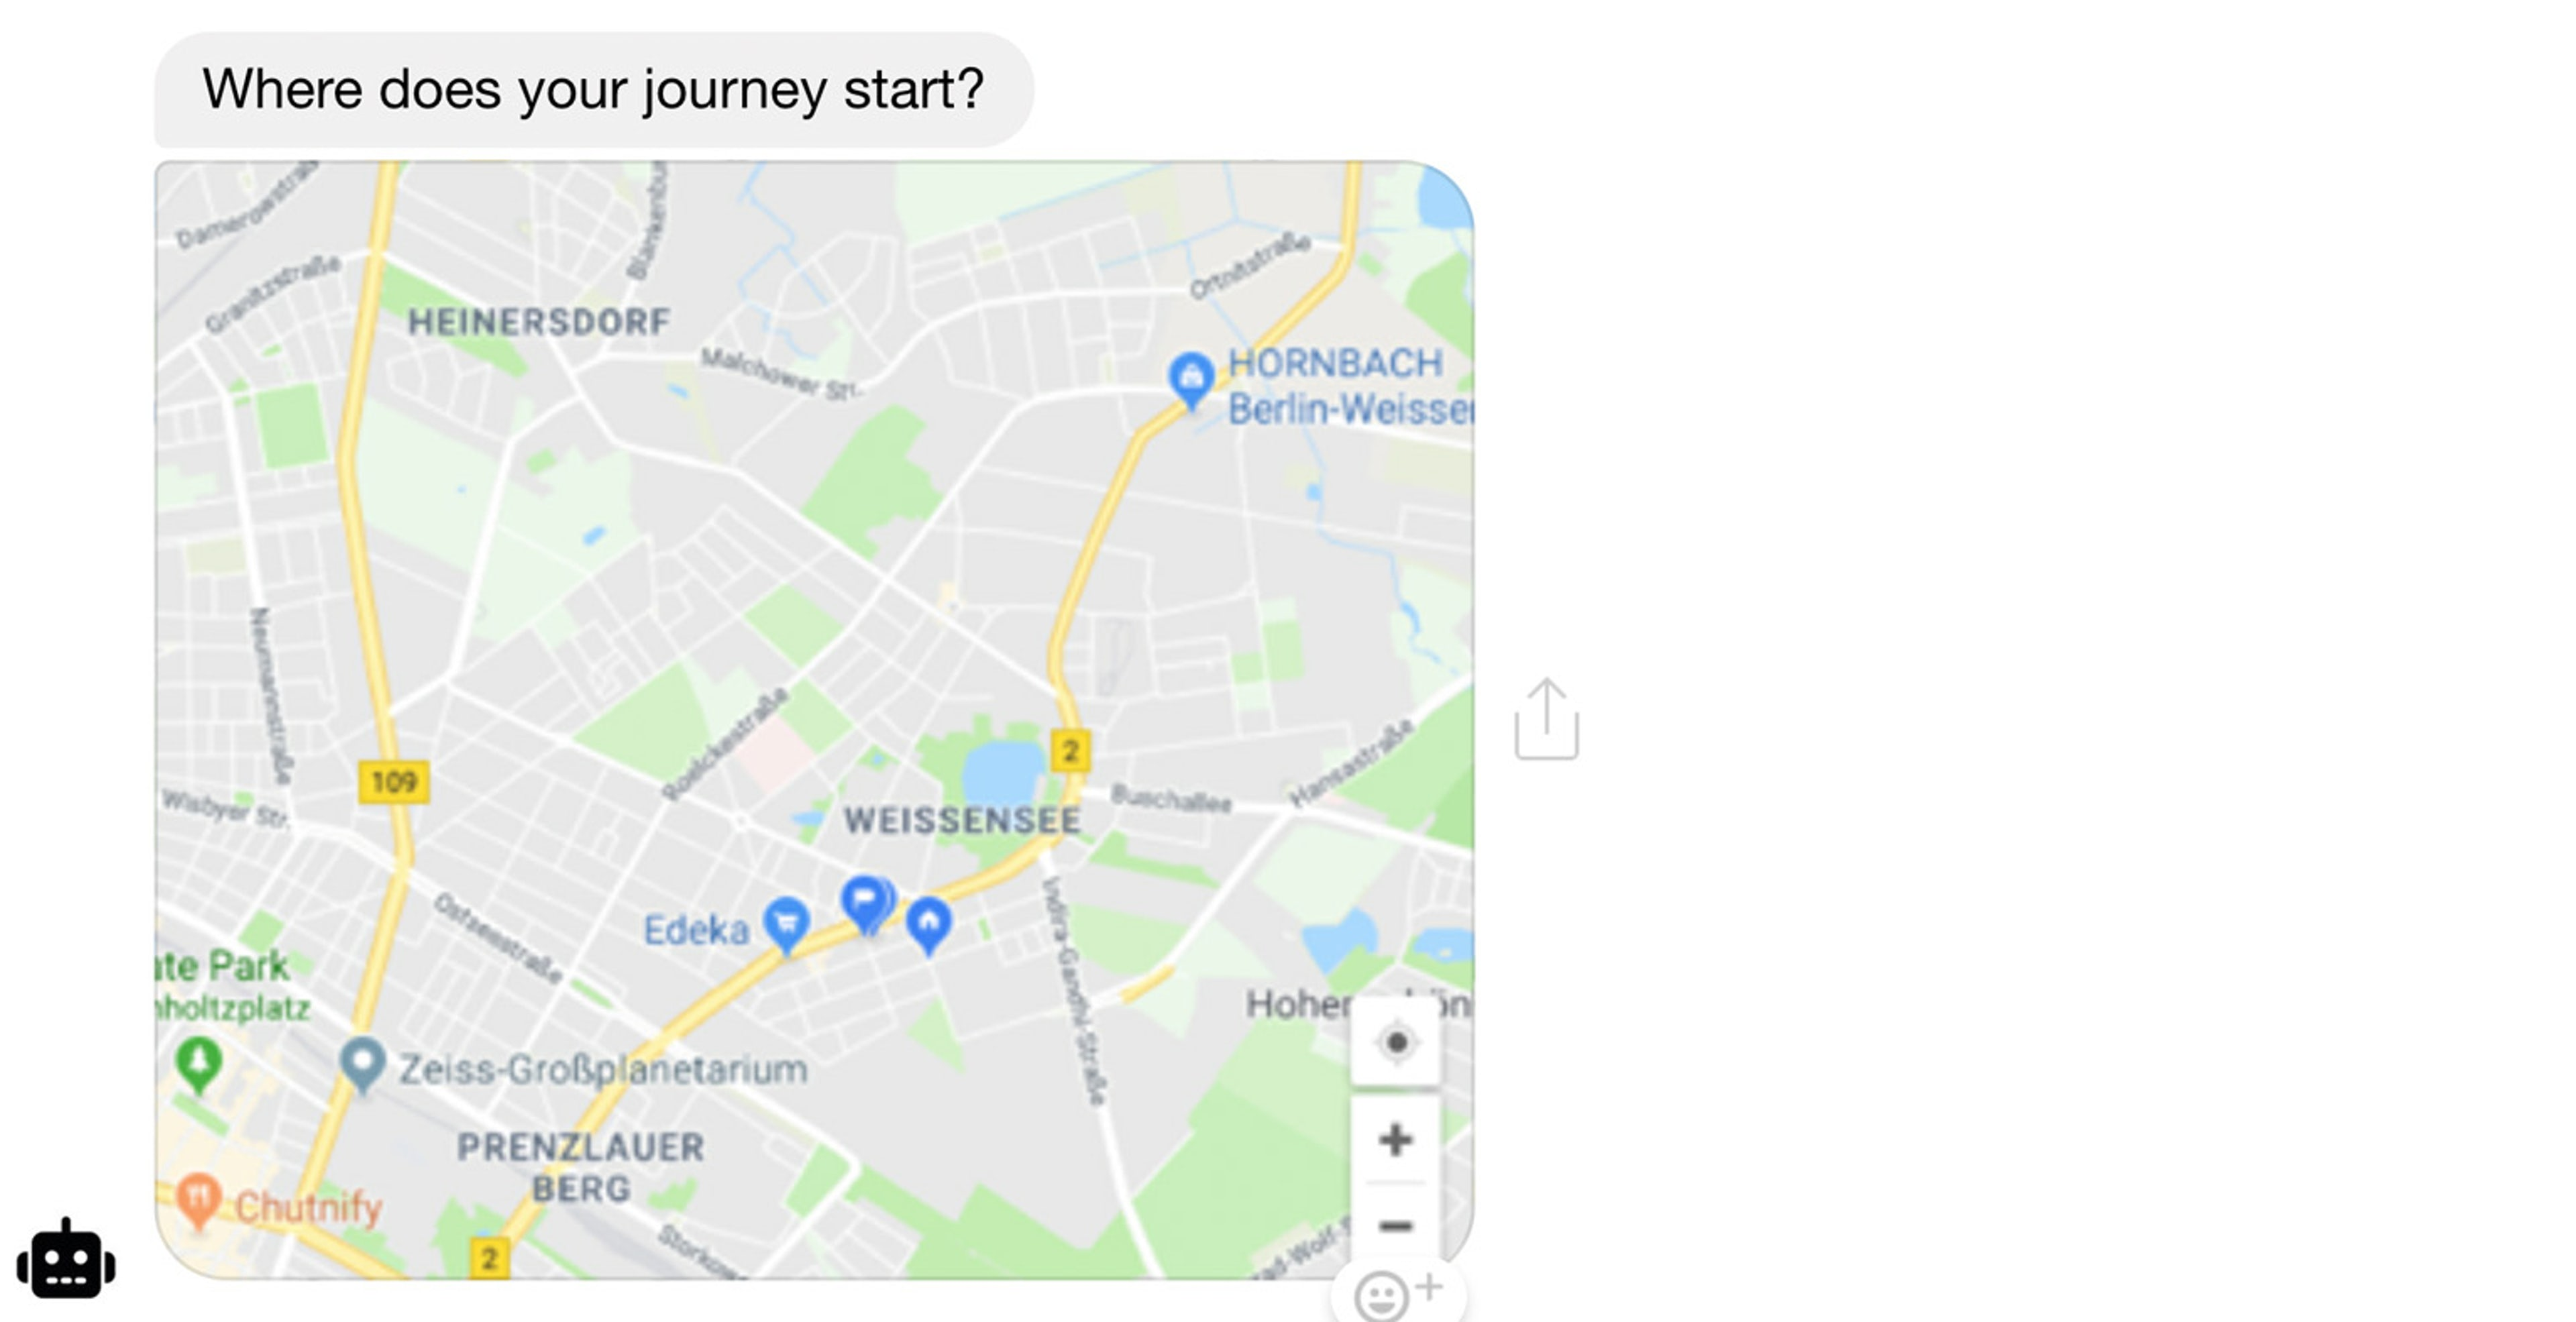 a map to interact with is familiar makes it very clear what the user needs to do